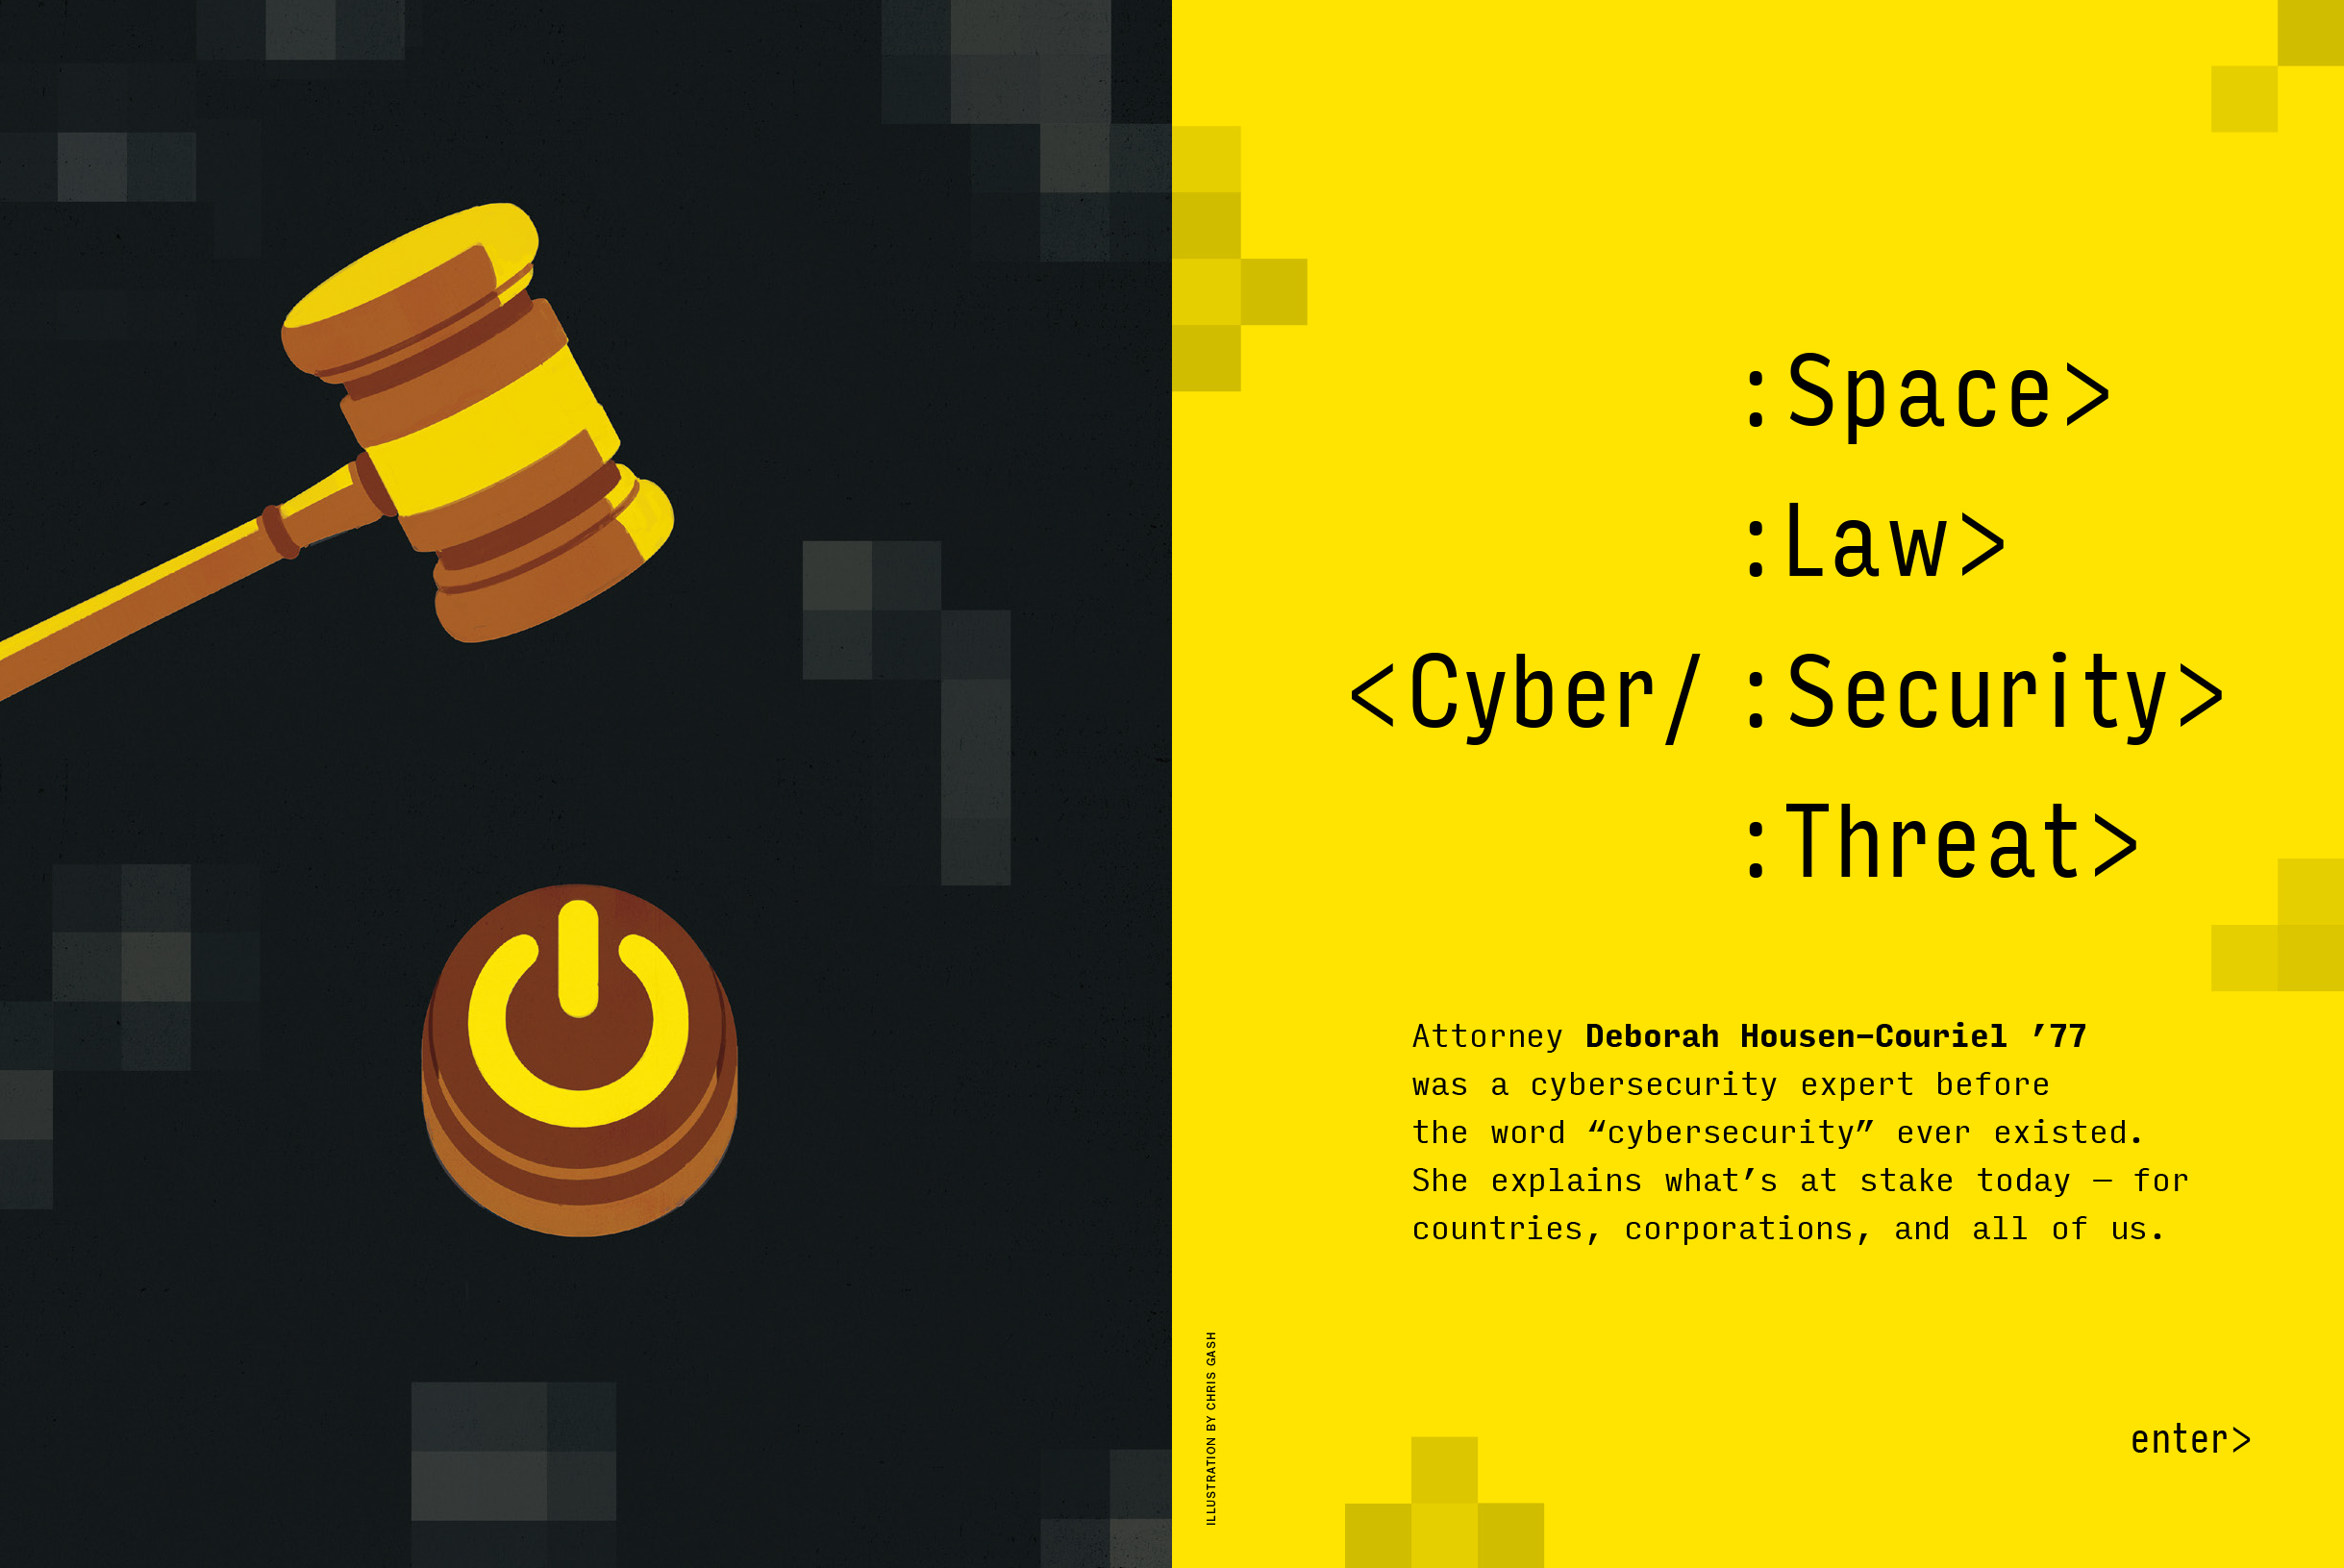 Cyber/: Space :Law :Security :Threat